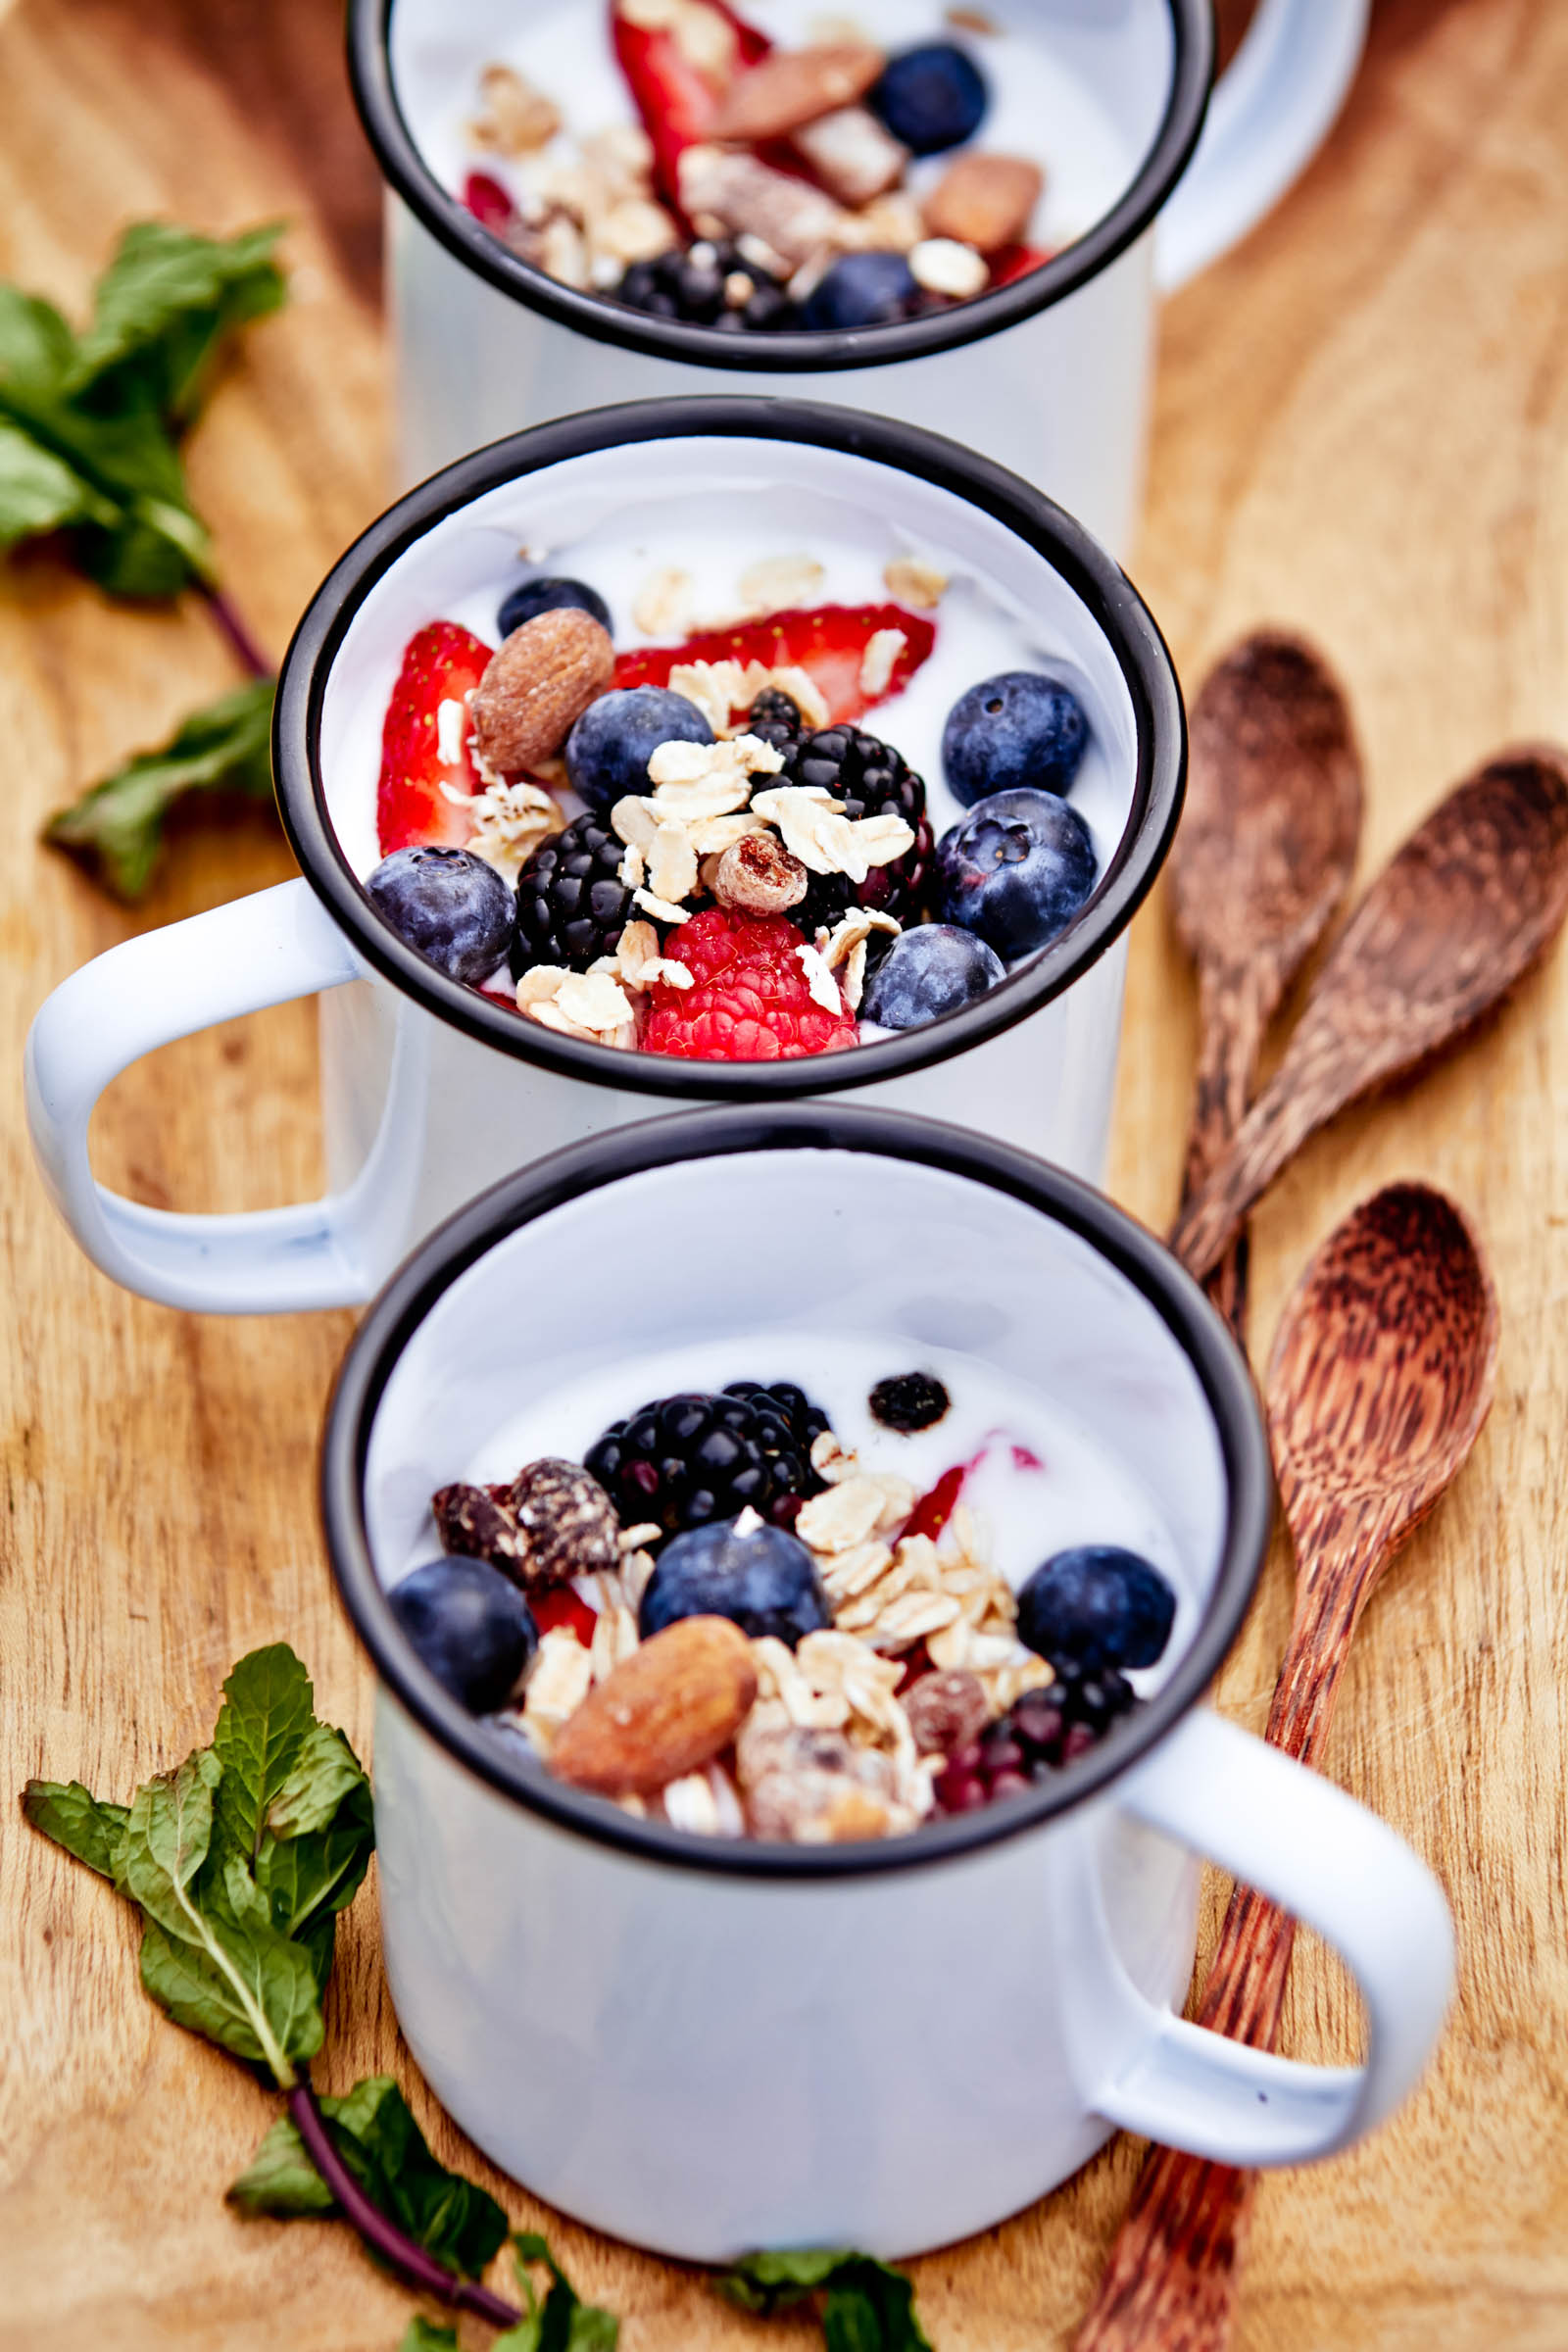 homemade yogurt with berries and granola